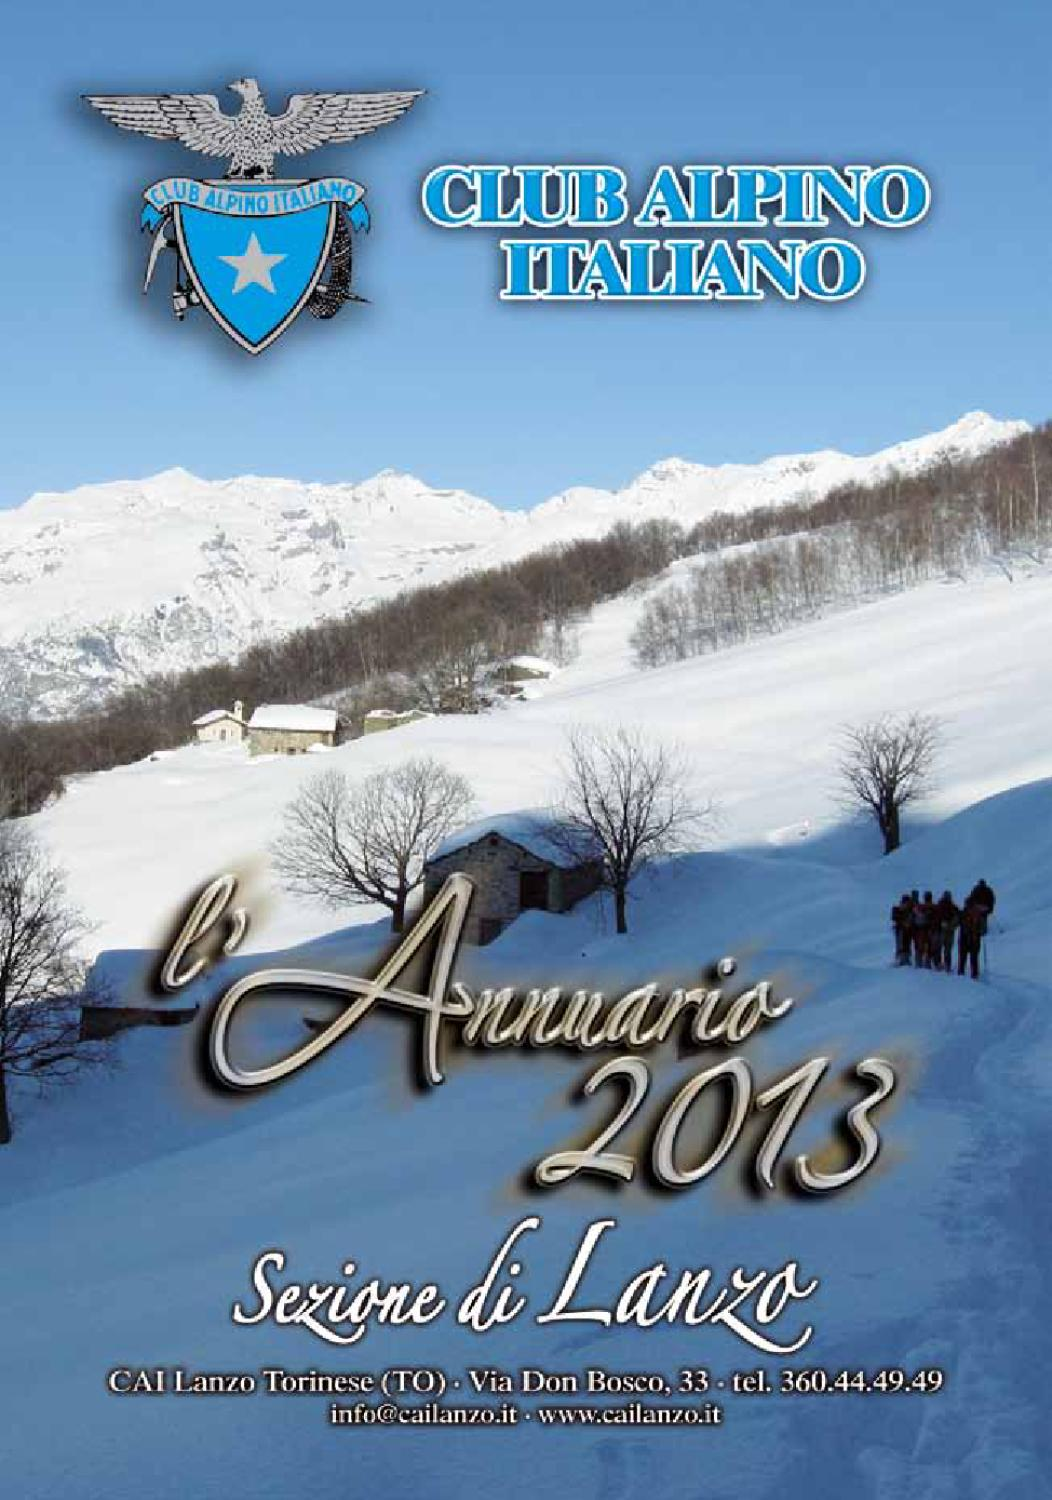 By Annuario Issuu Bruno 2013 Umspzgqv Visca uJ3F1KTlc